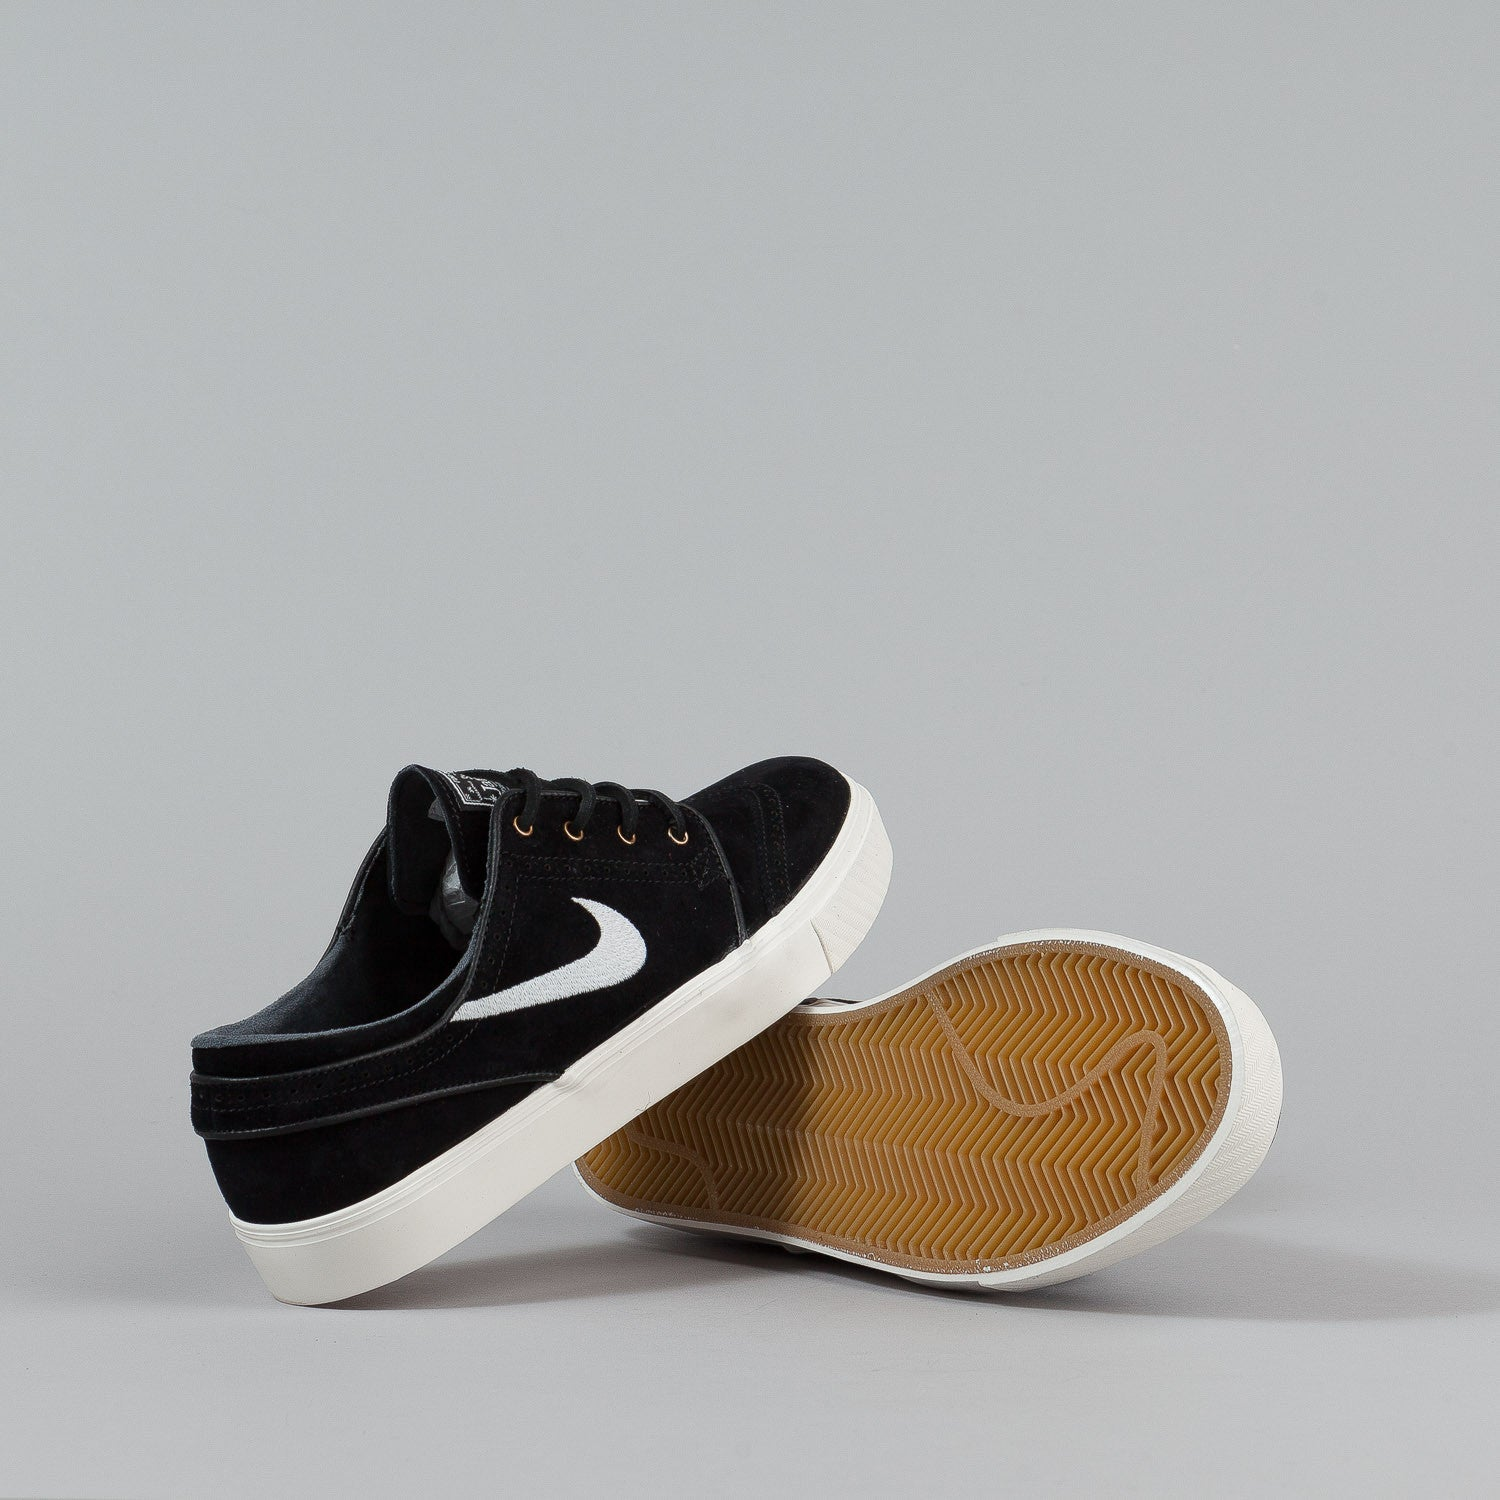 nike sb stefan janoski elite shoes black sail flatspot